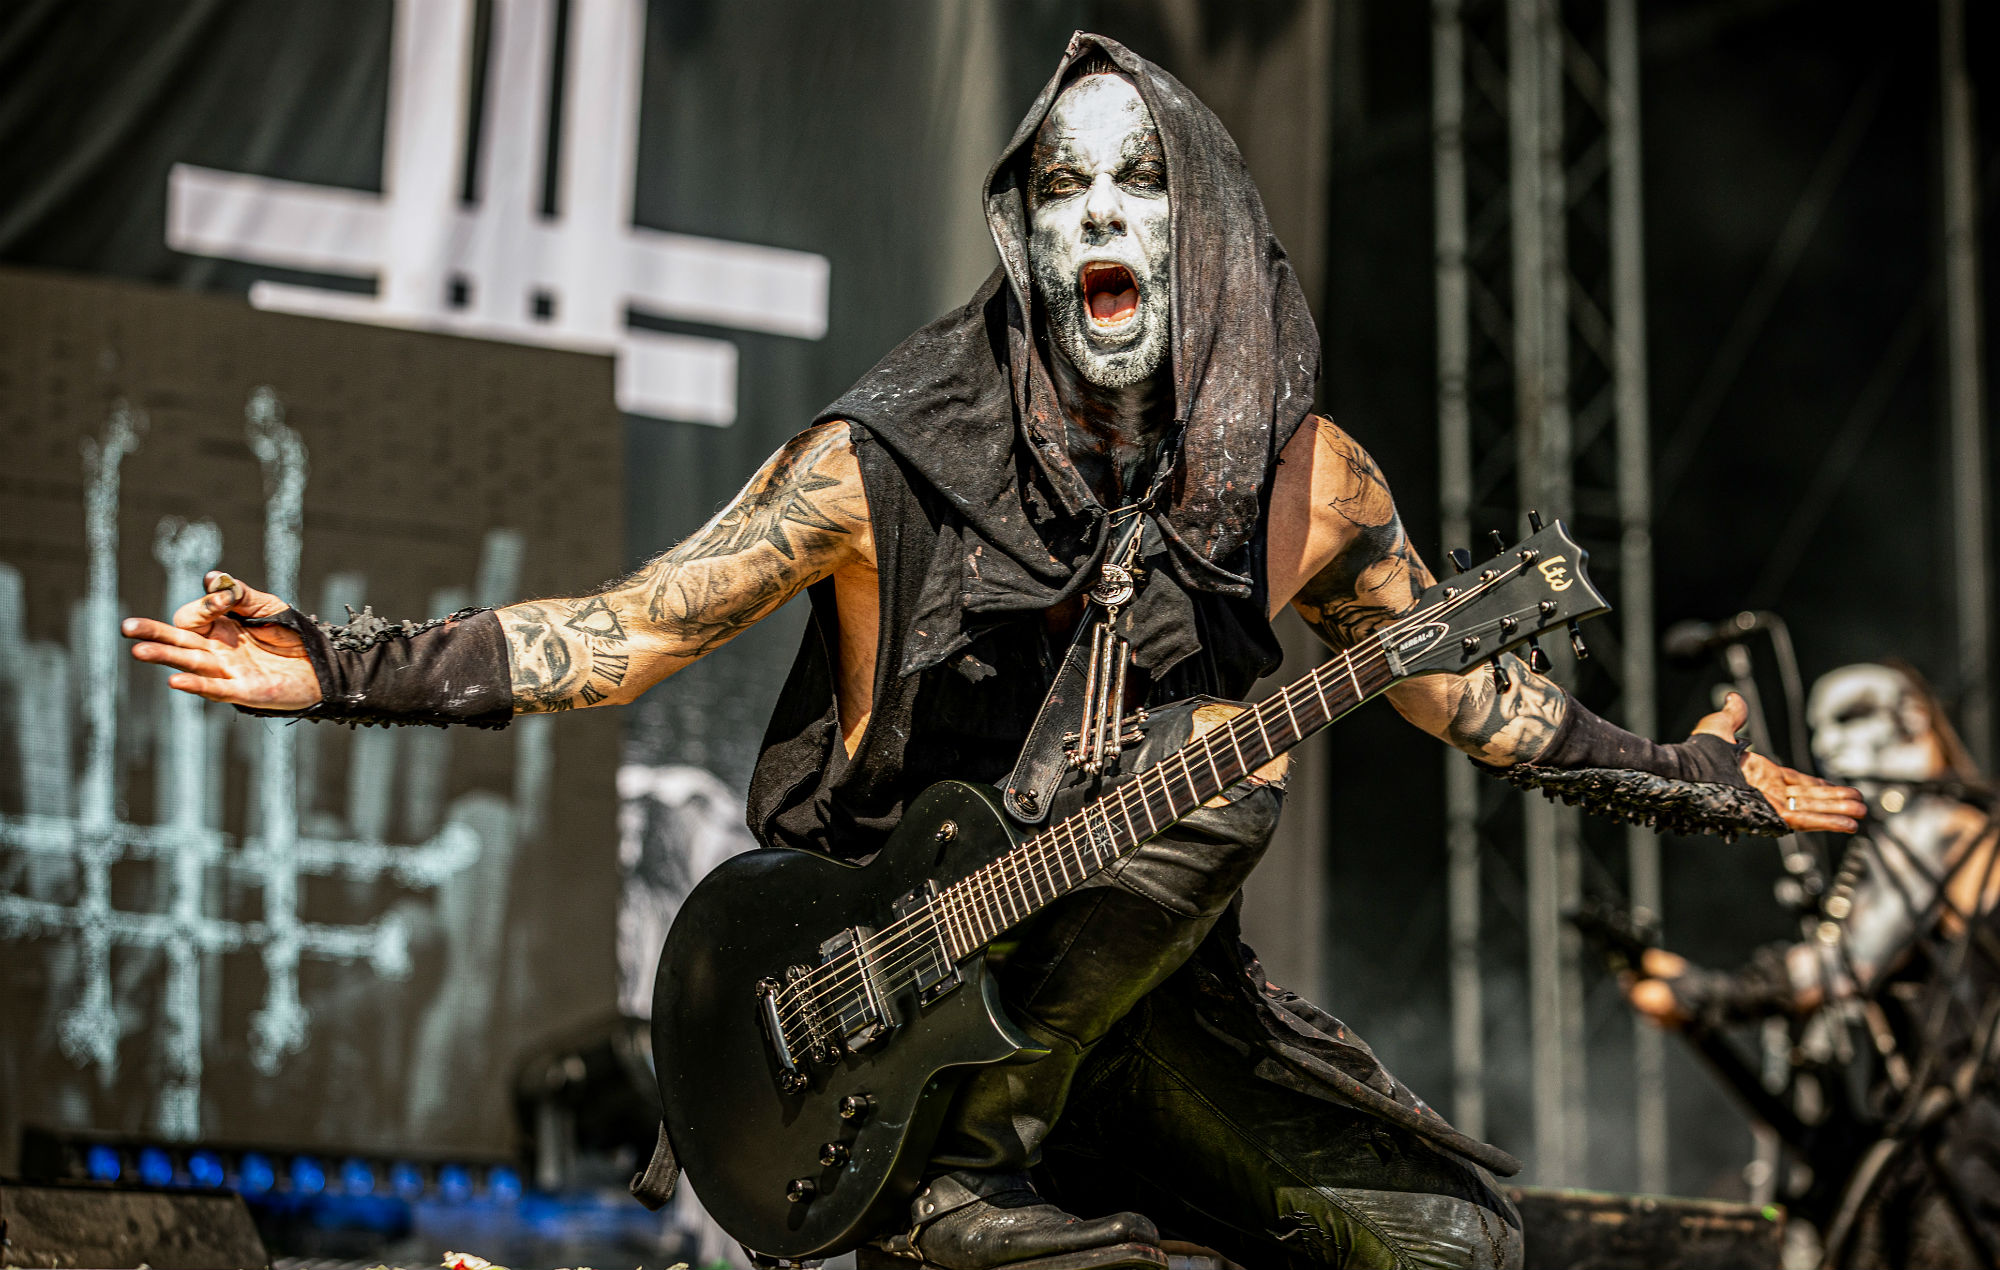 Behemoth frontman kicked out of YMCA gym for not worshipping Jesus